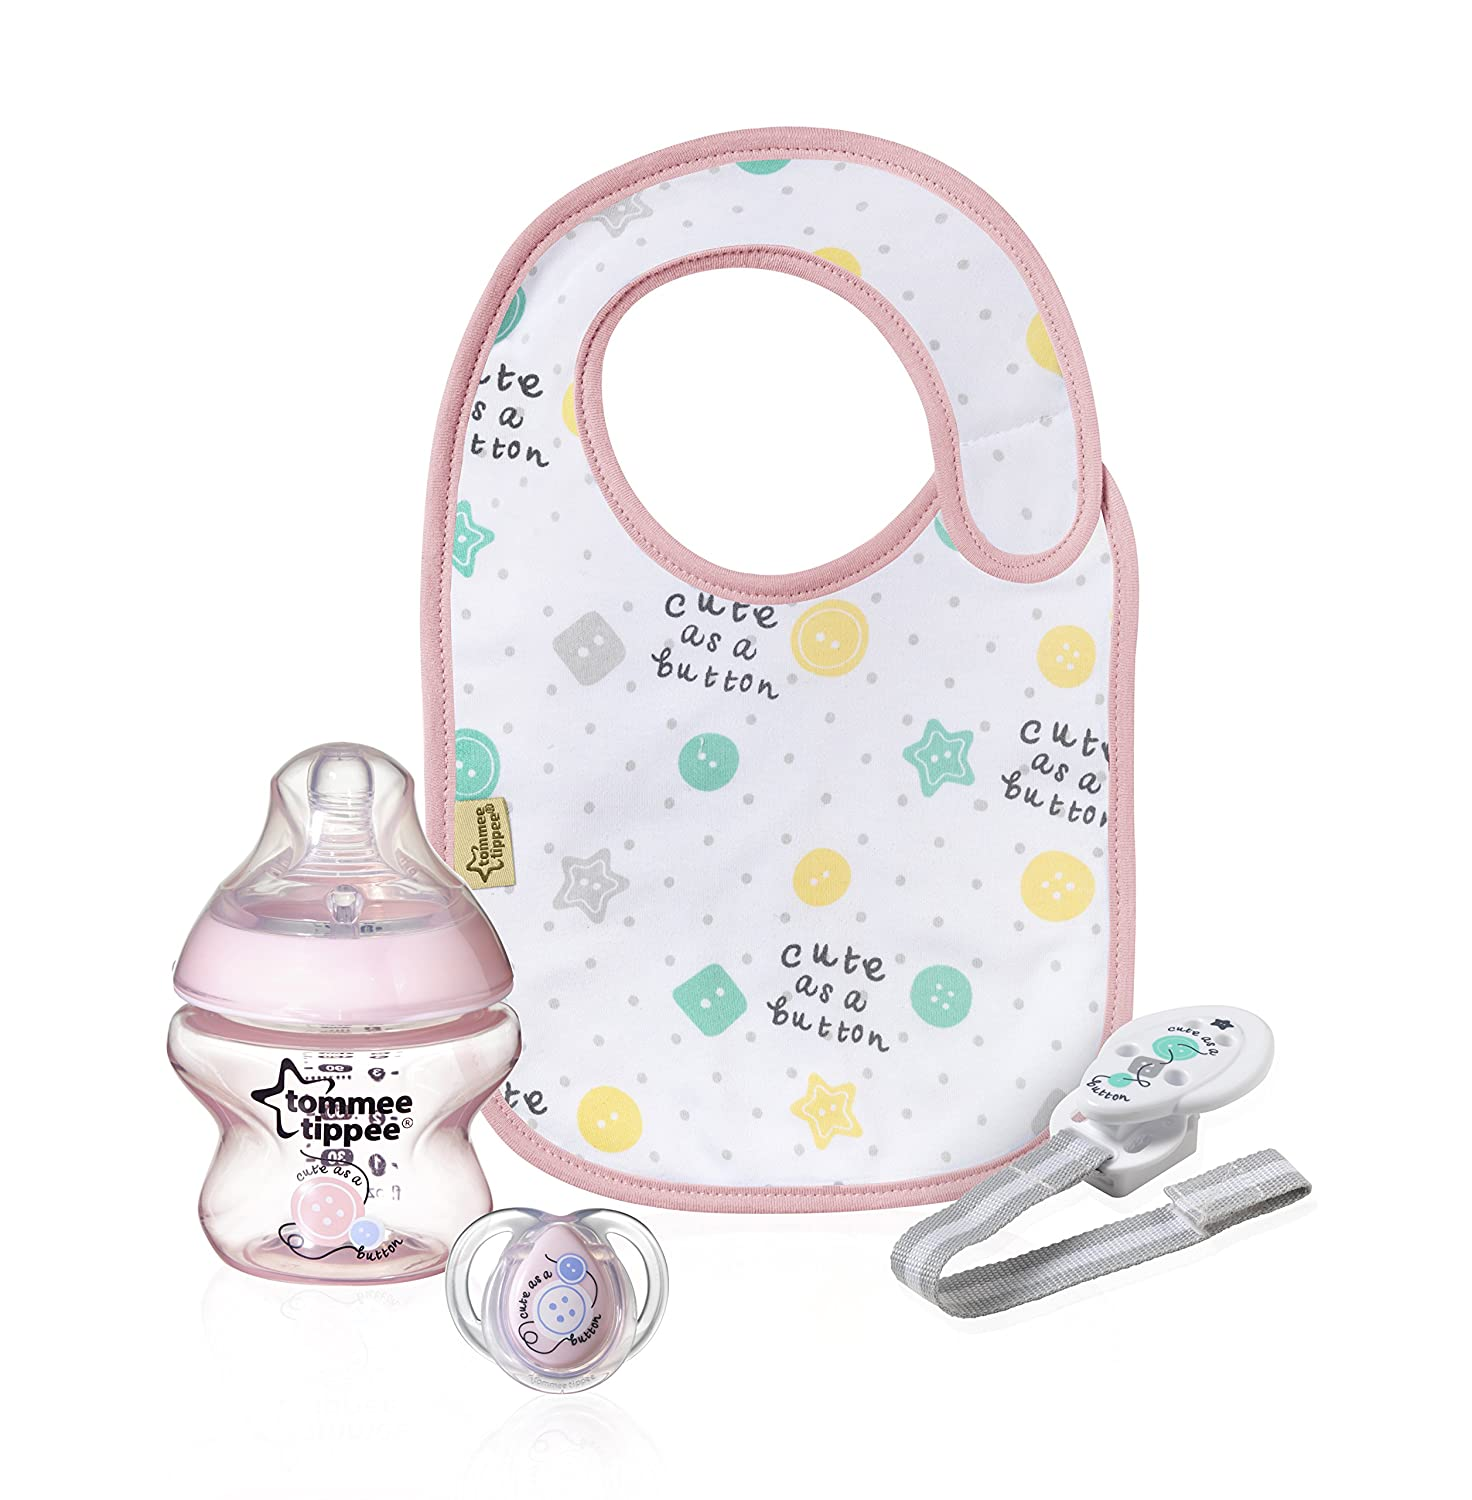 Tommee Tippee Gift set, to choose from 42354677